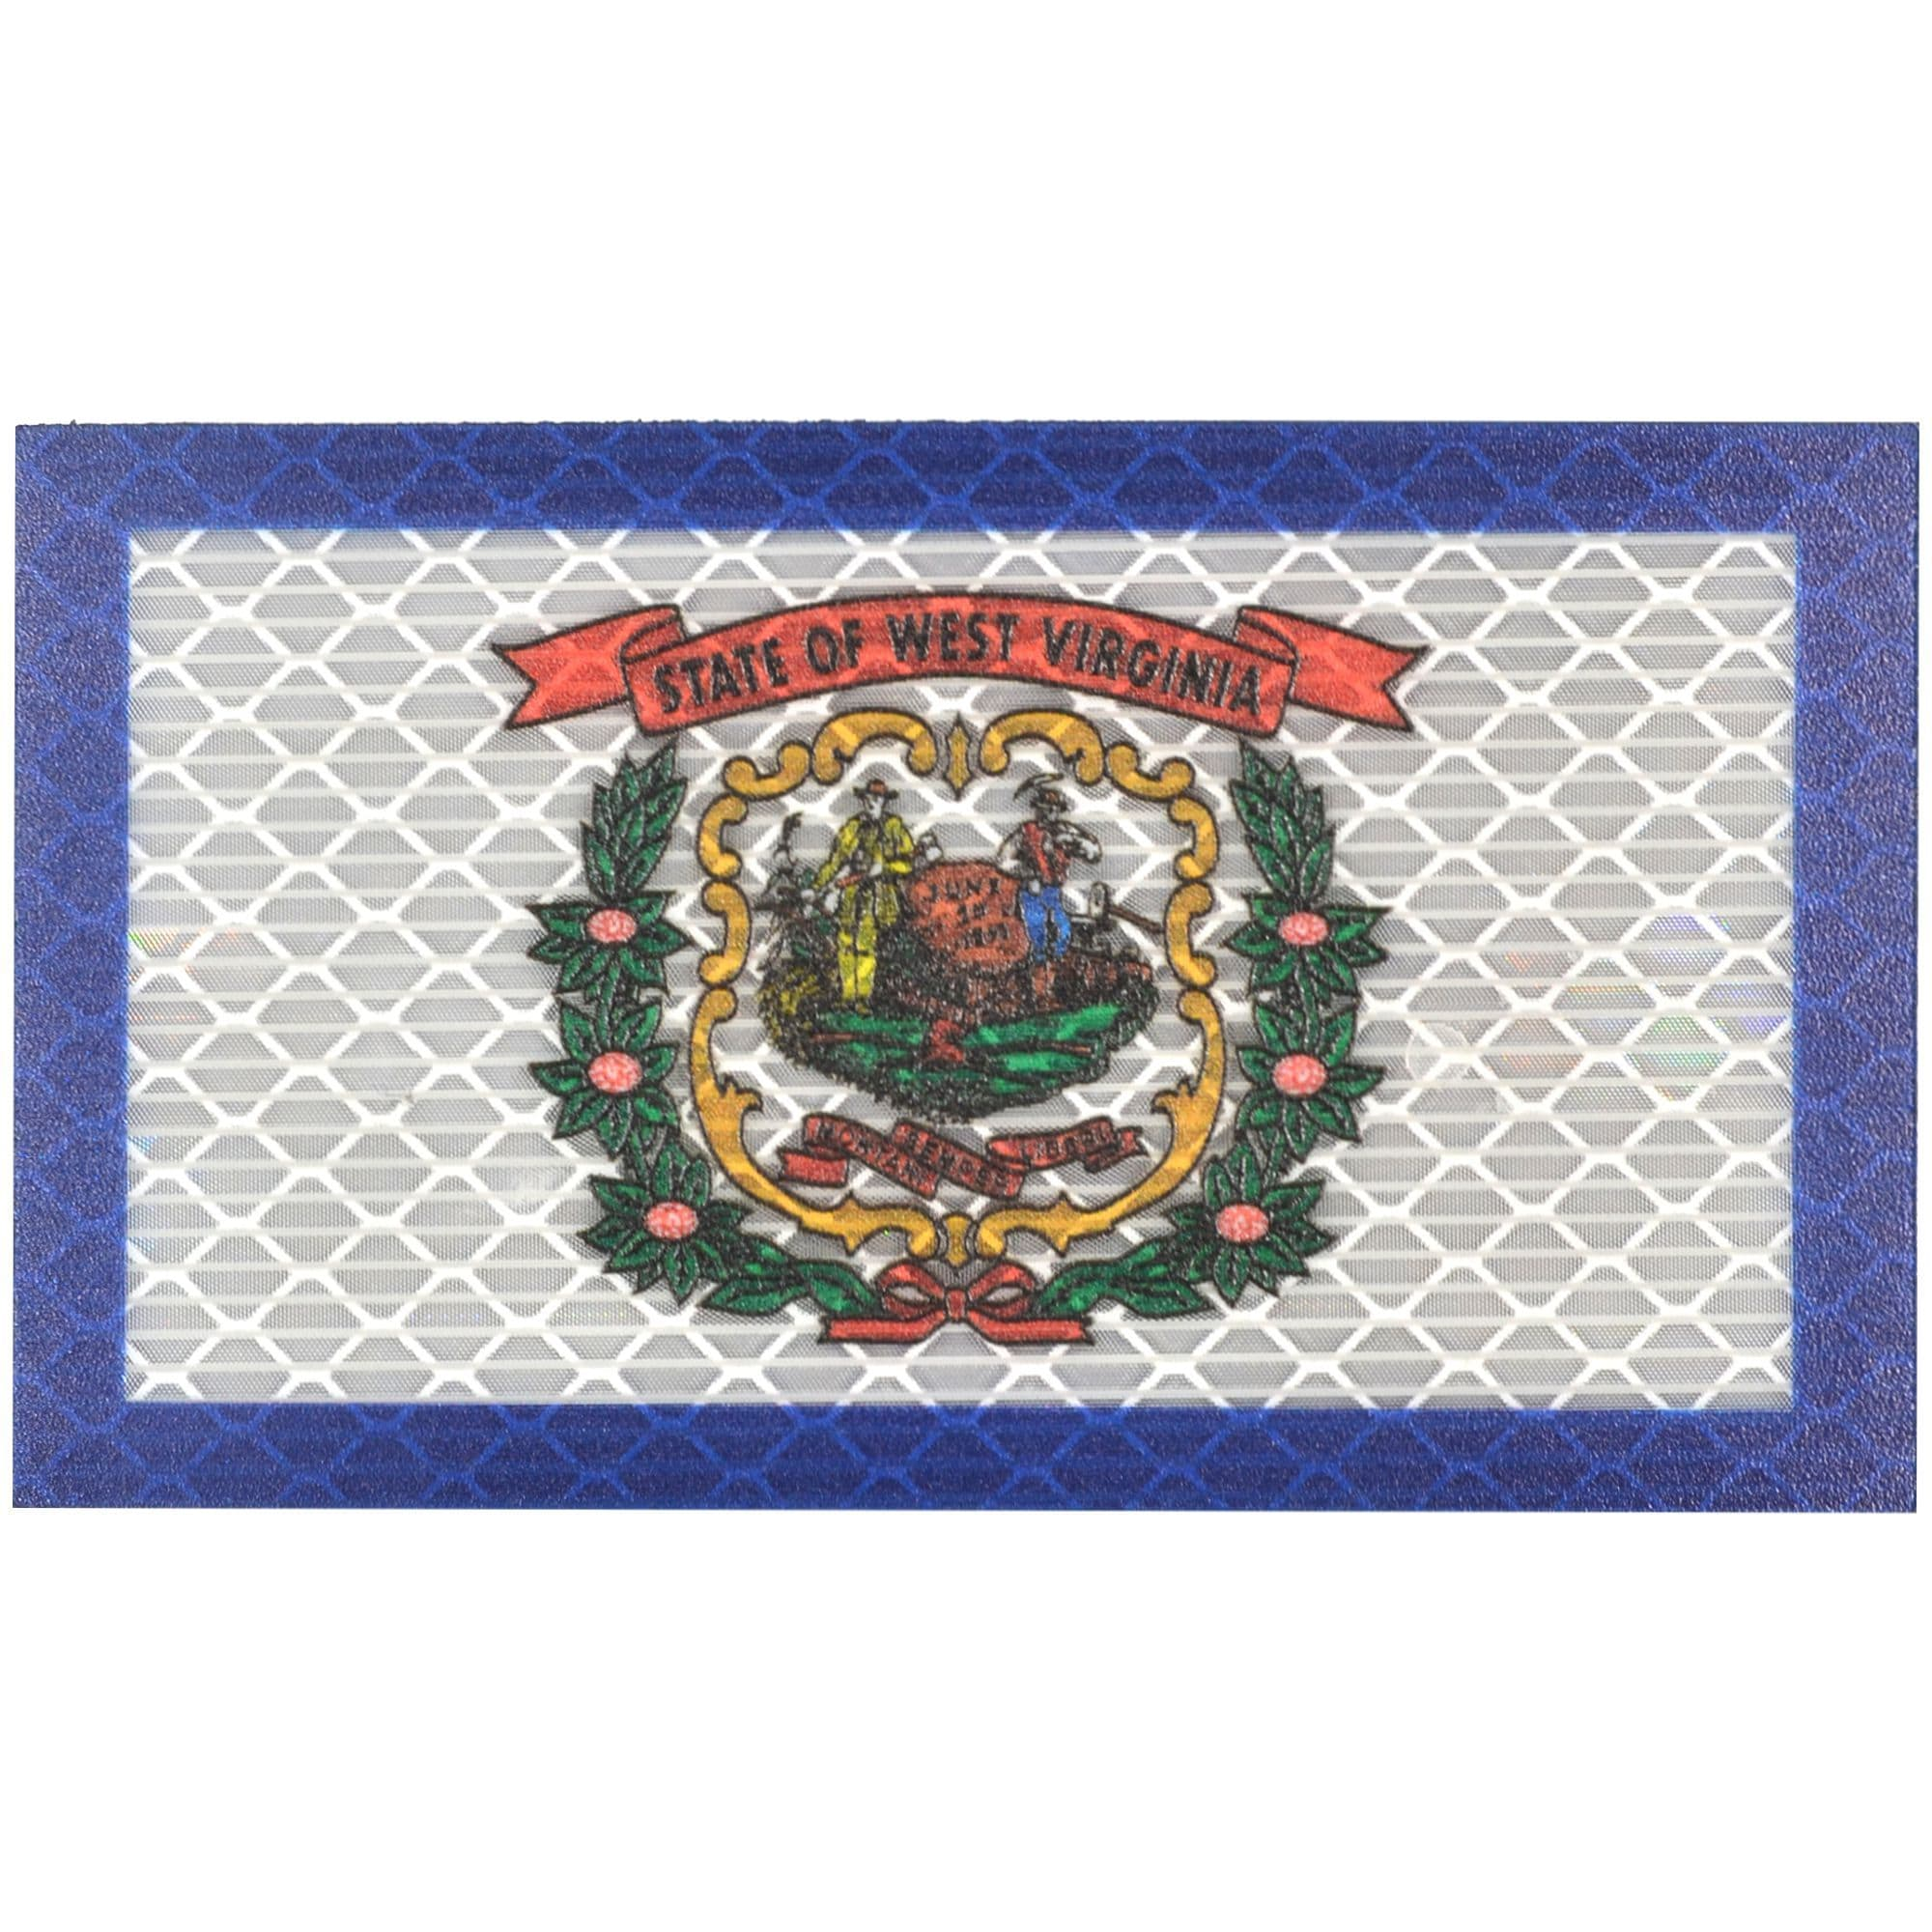 Reflective West Virginia State Flag 2x35 Patch Tactical Gear Junkie